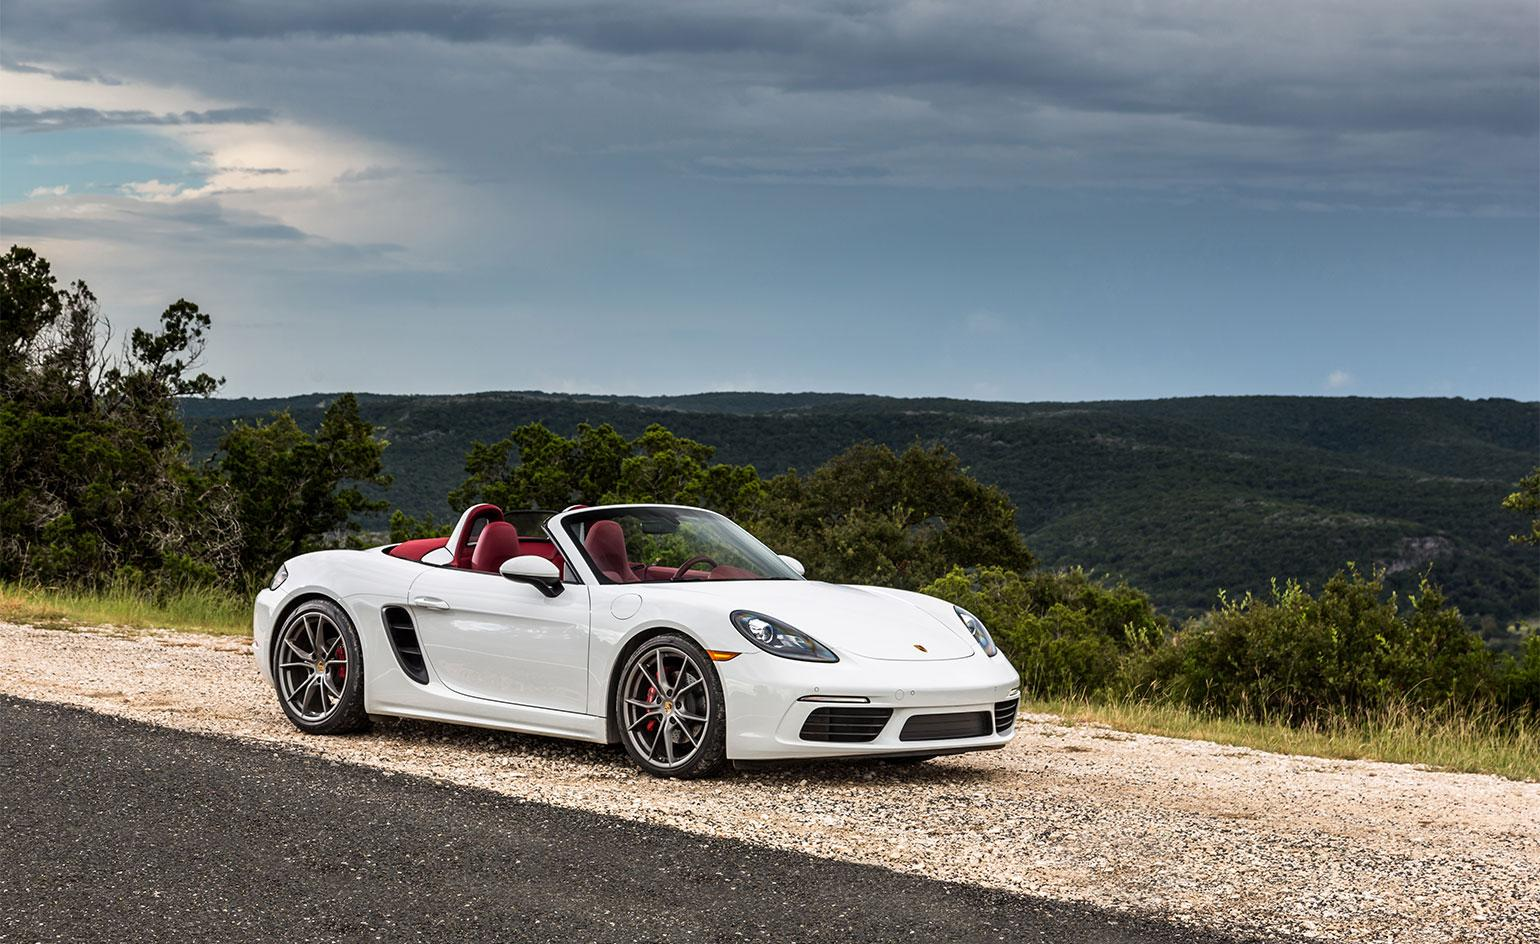 Porsche 718 Boxster Is The Sleekest Sports Car On The Market Wallpaper